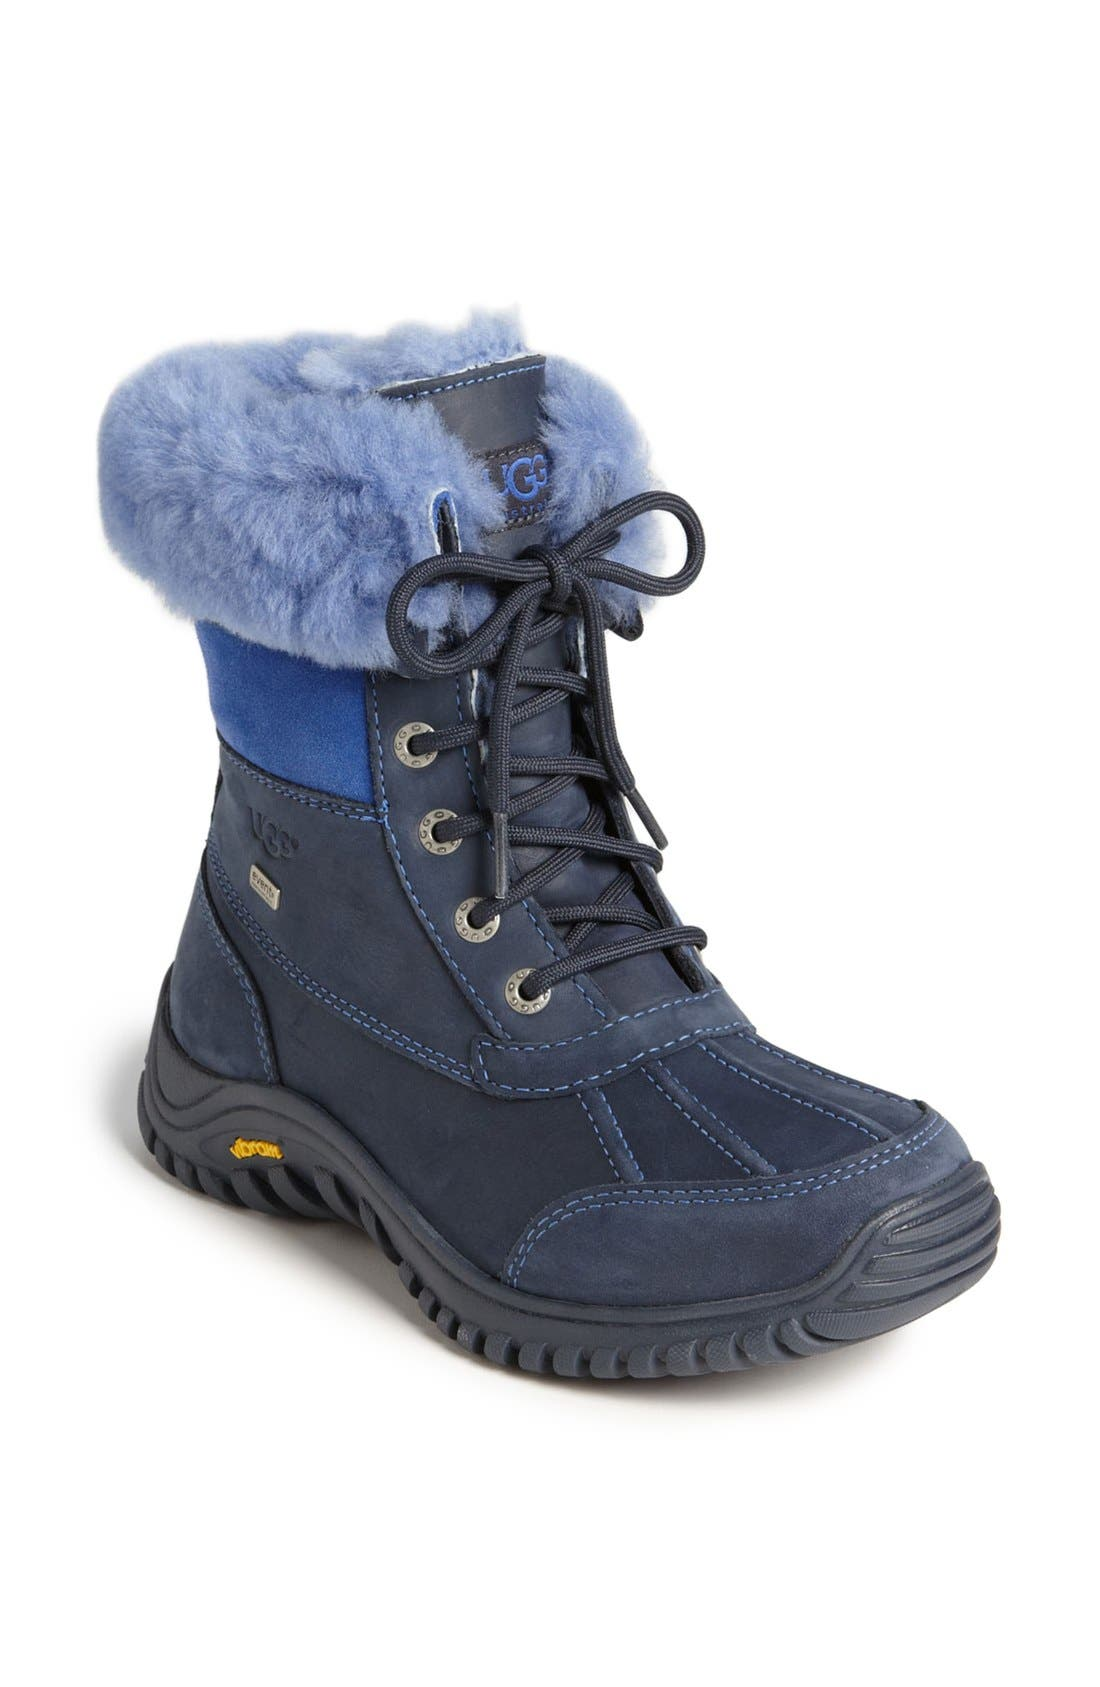 Alternate Image 1 Selected - UGG® Adirondack II Waterproof Boot (Women)